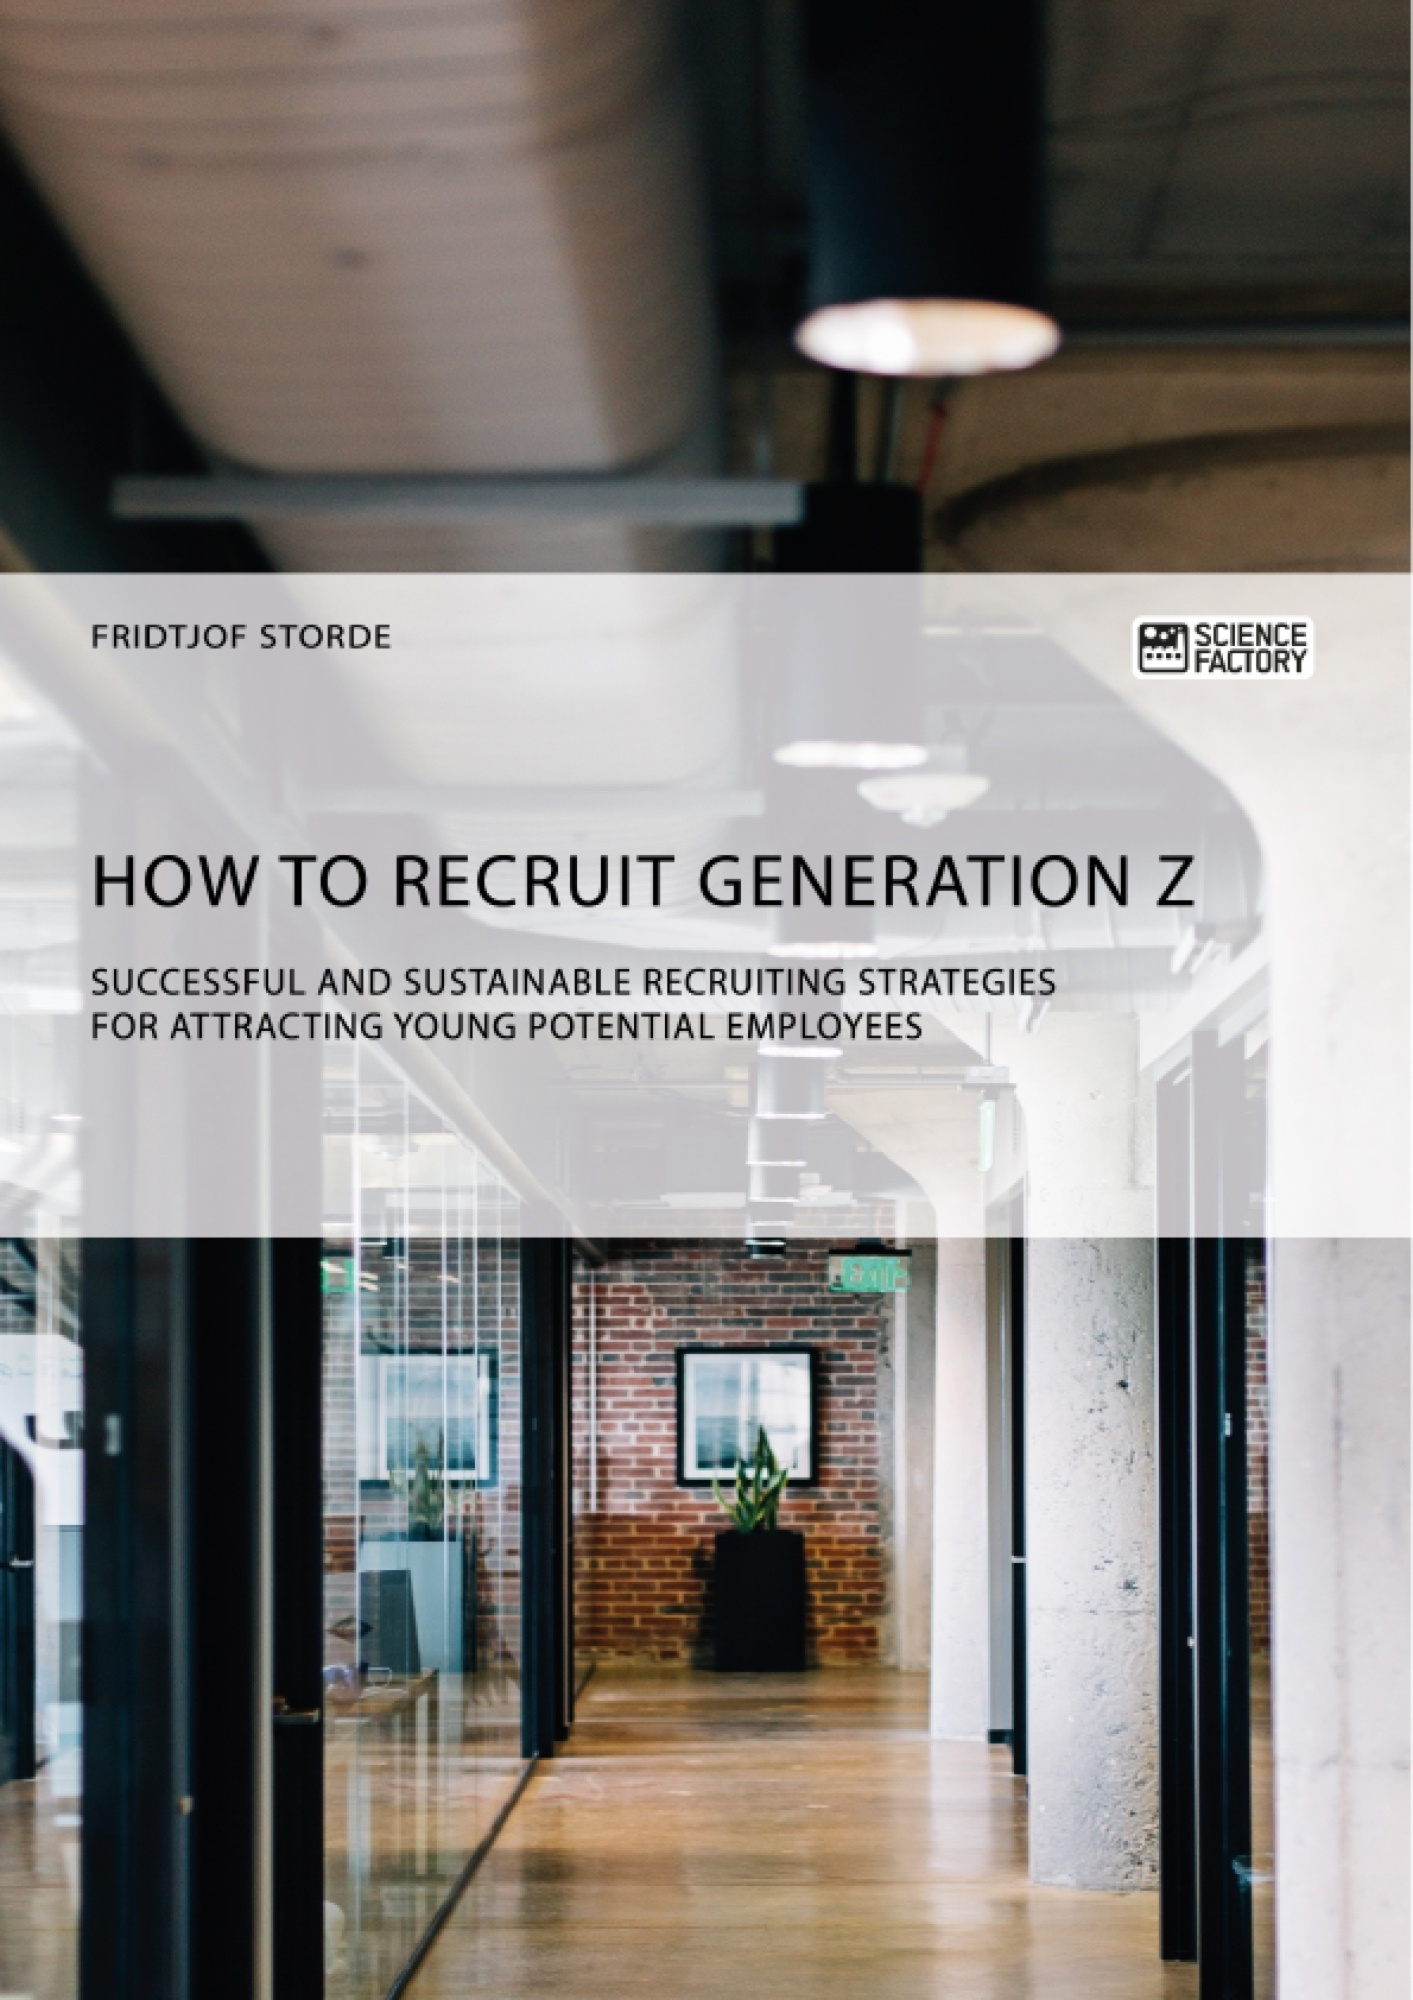 Title: How to recruit Generation Z. Successful and sustainable recruiting strategies for attracting young potential employees